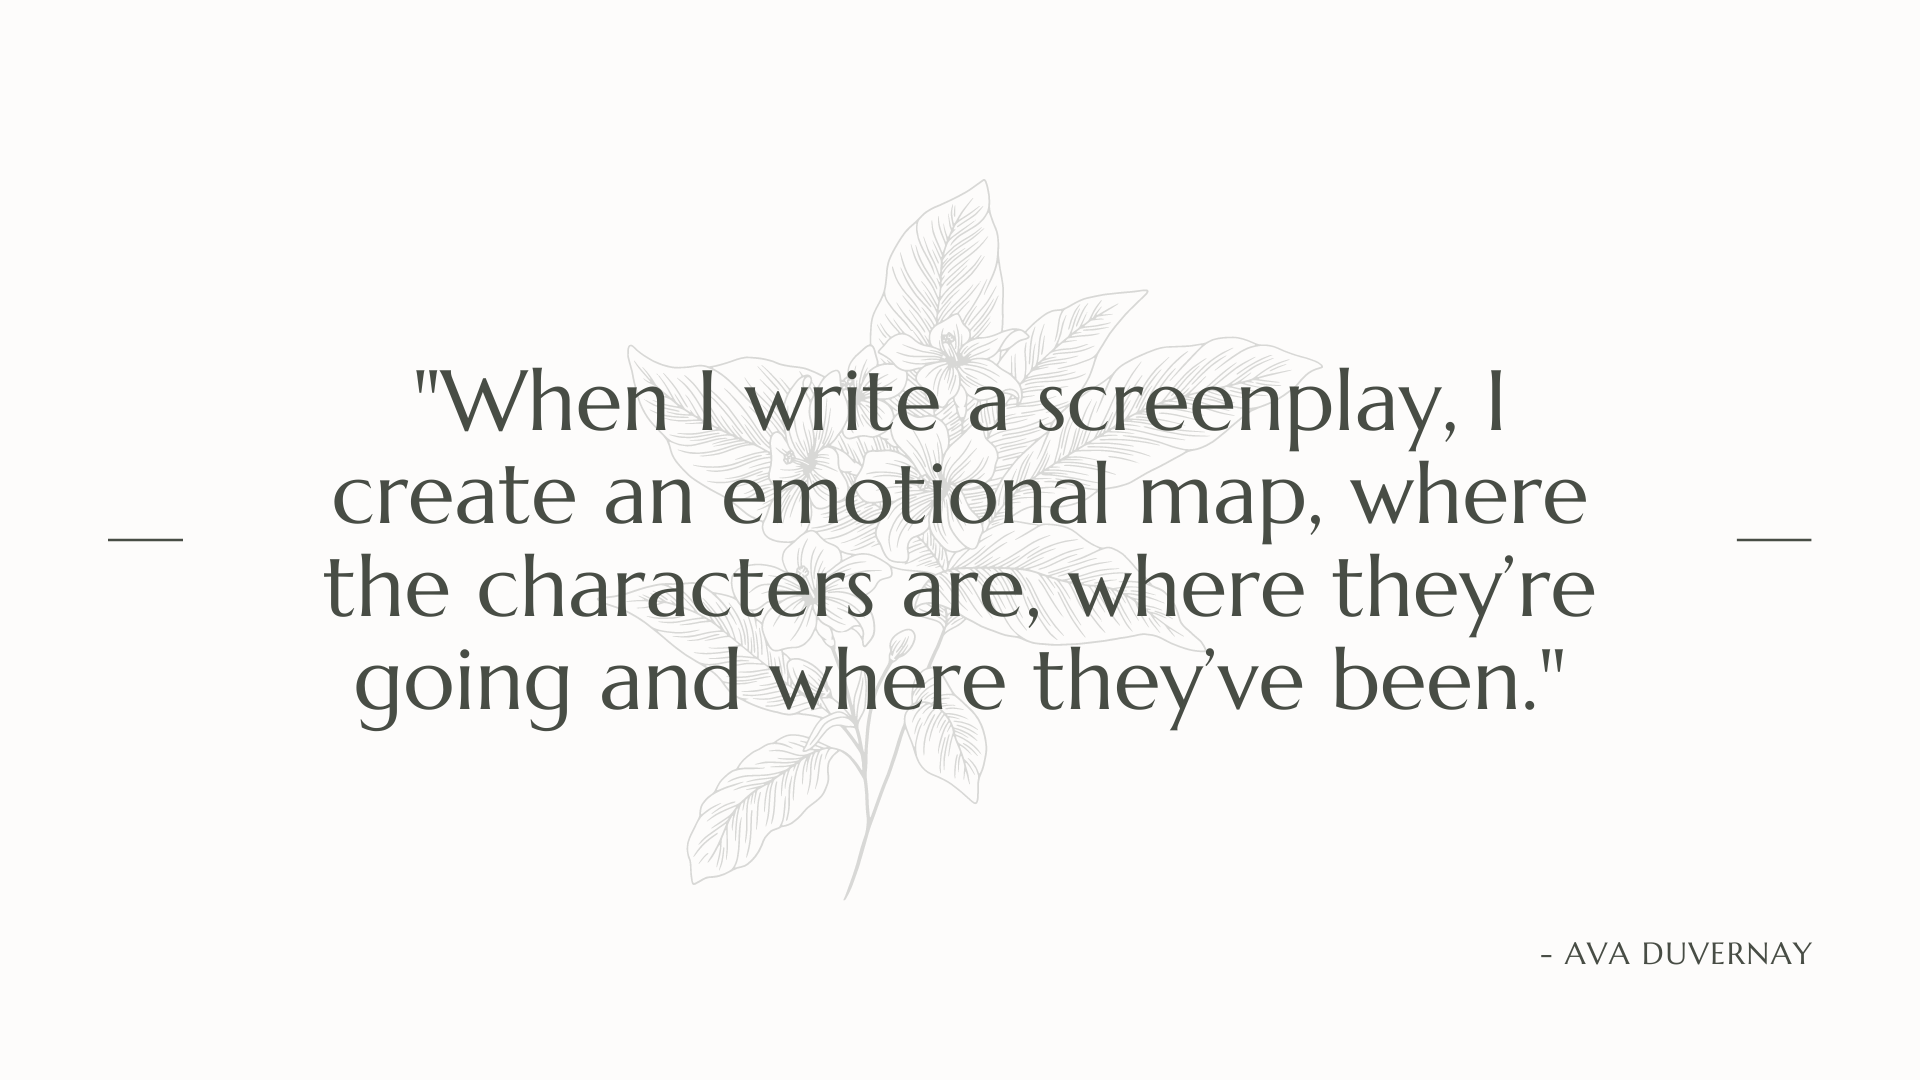 When I write a screenplay, I create an emotional map, where the characters are, where they're going and where they've been. Ava DuVernay